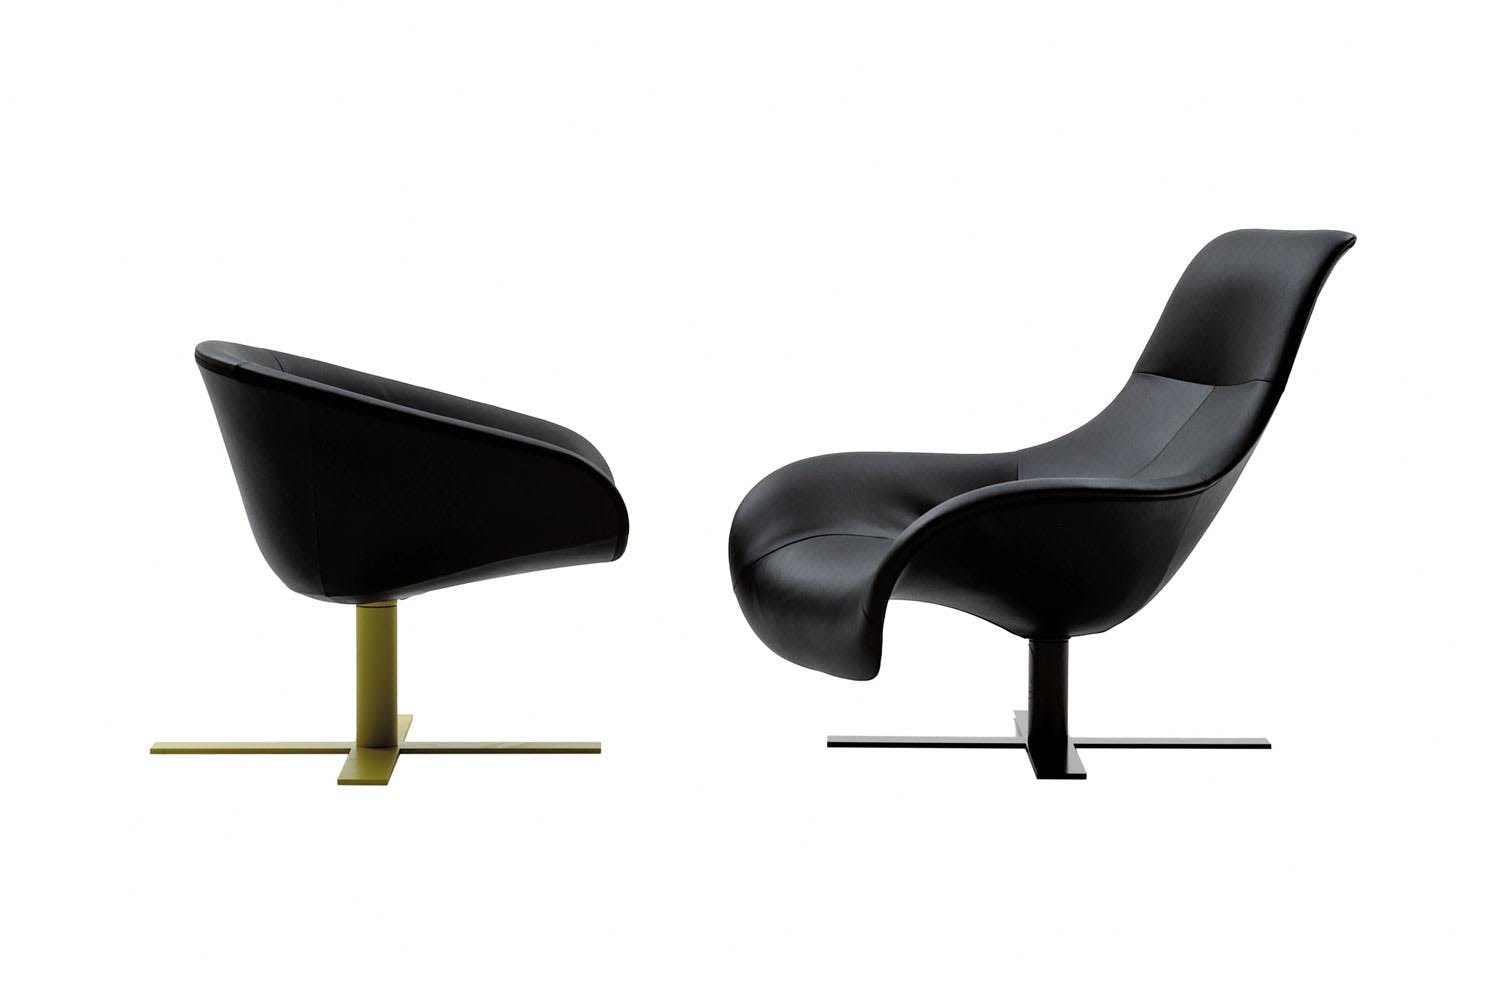 mart armchair by antonio citterio for b b italia space furniture. Black Bedroom Furniture Sets. Home Design Ideas